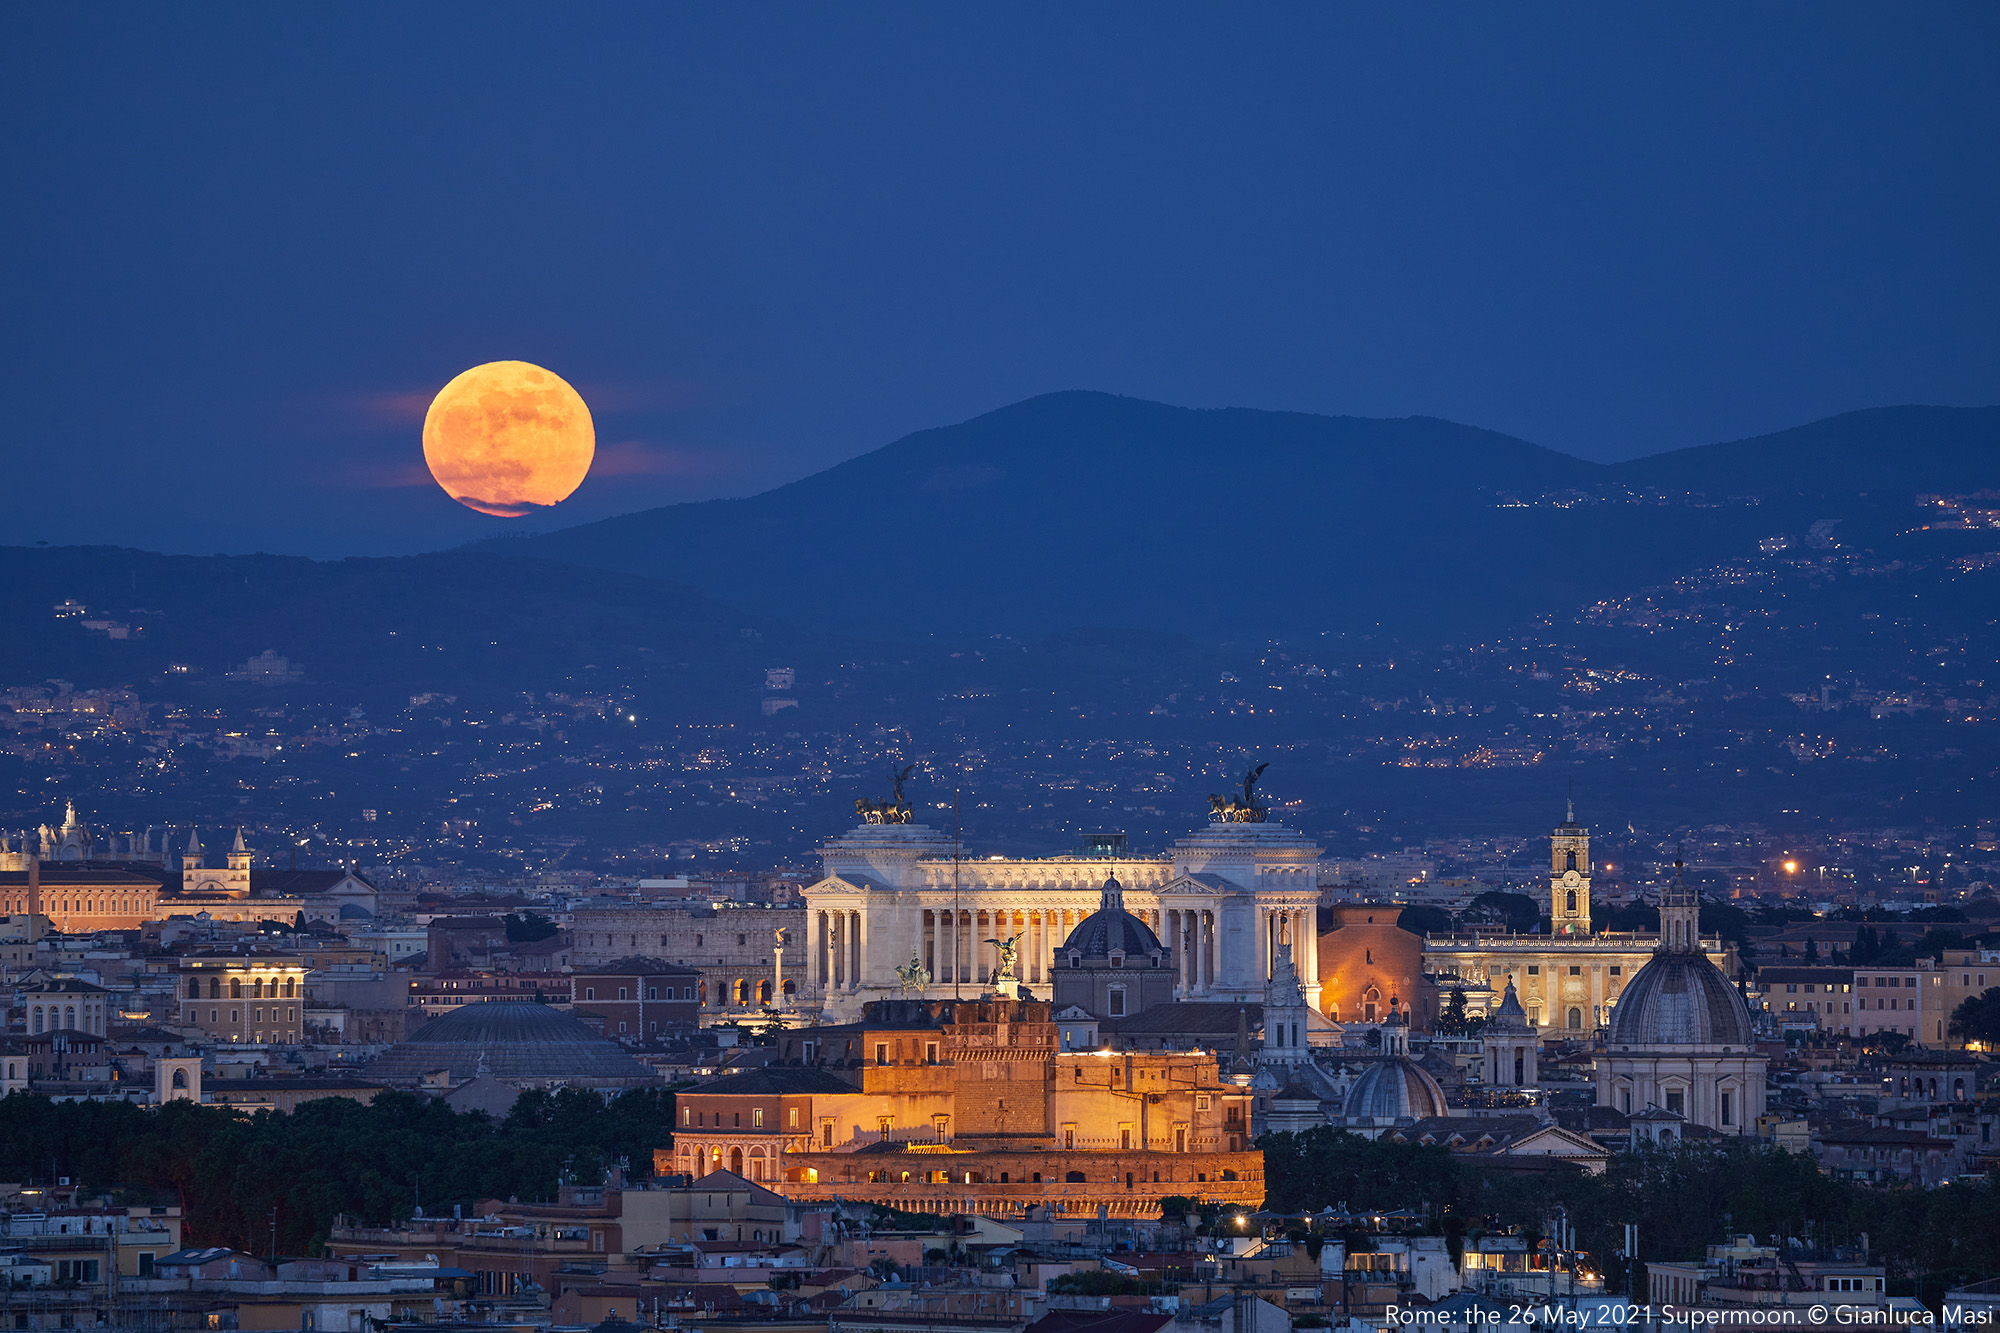 The Flower Supermoon rises above Rome. 26 May 2021.